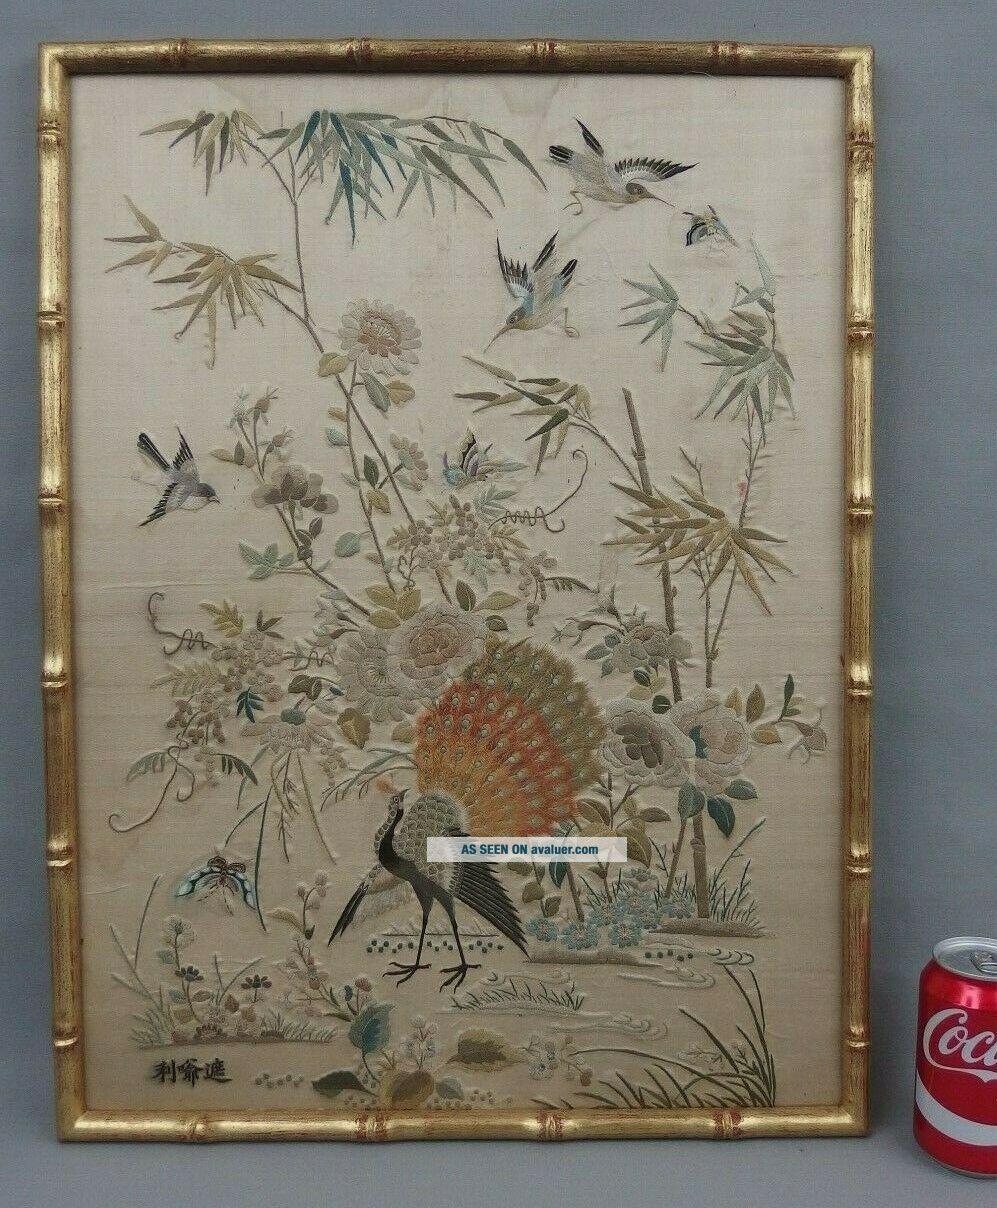 Antique Chinese Silk Embroidery Tapestry Textile Panel W Peacock & Birds C1900